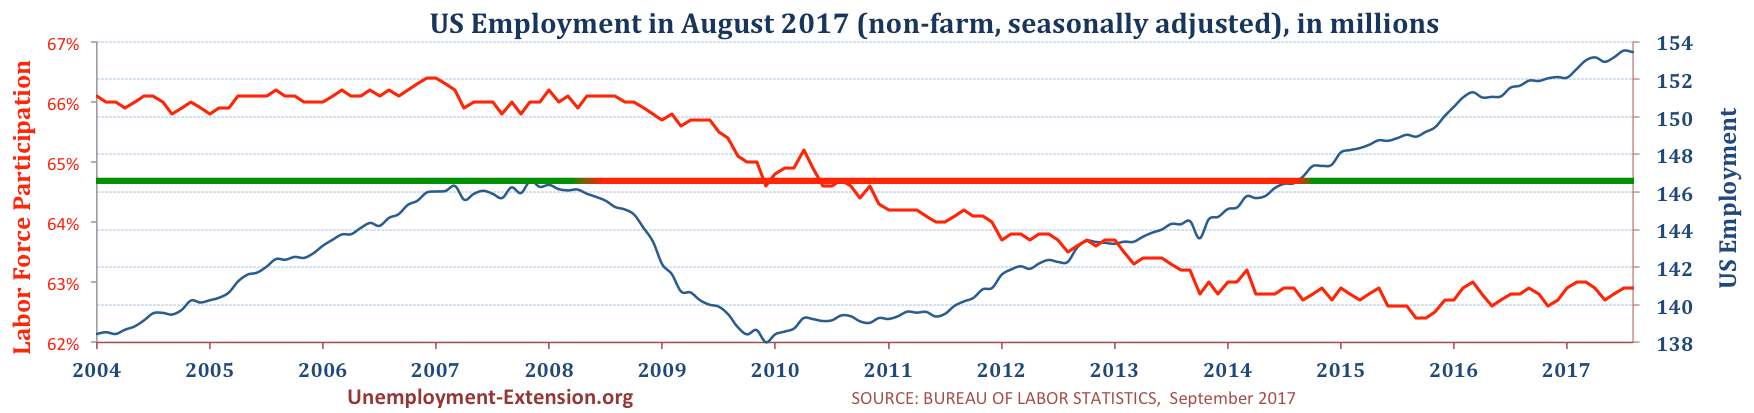 Total US Employment (non-farm, seasonally adjusted) in August of 2017. US economy has lost approximately 10 million jobs in comparison to pre-resession level.